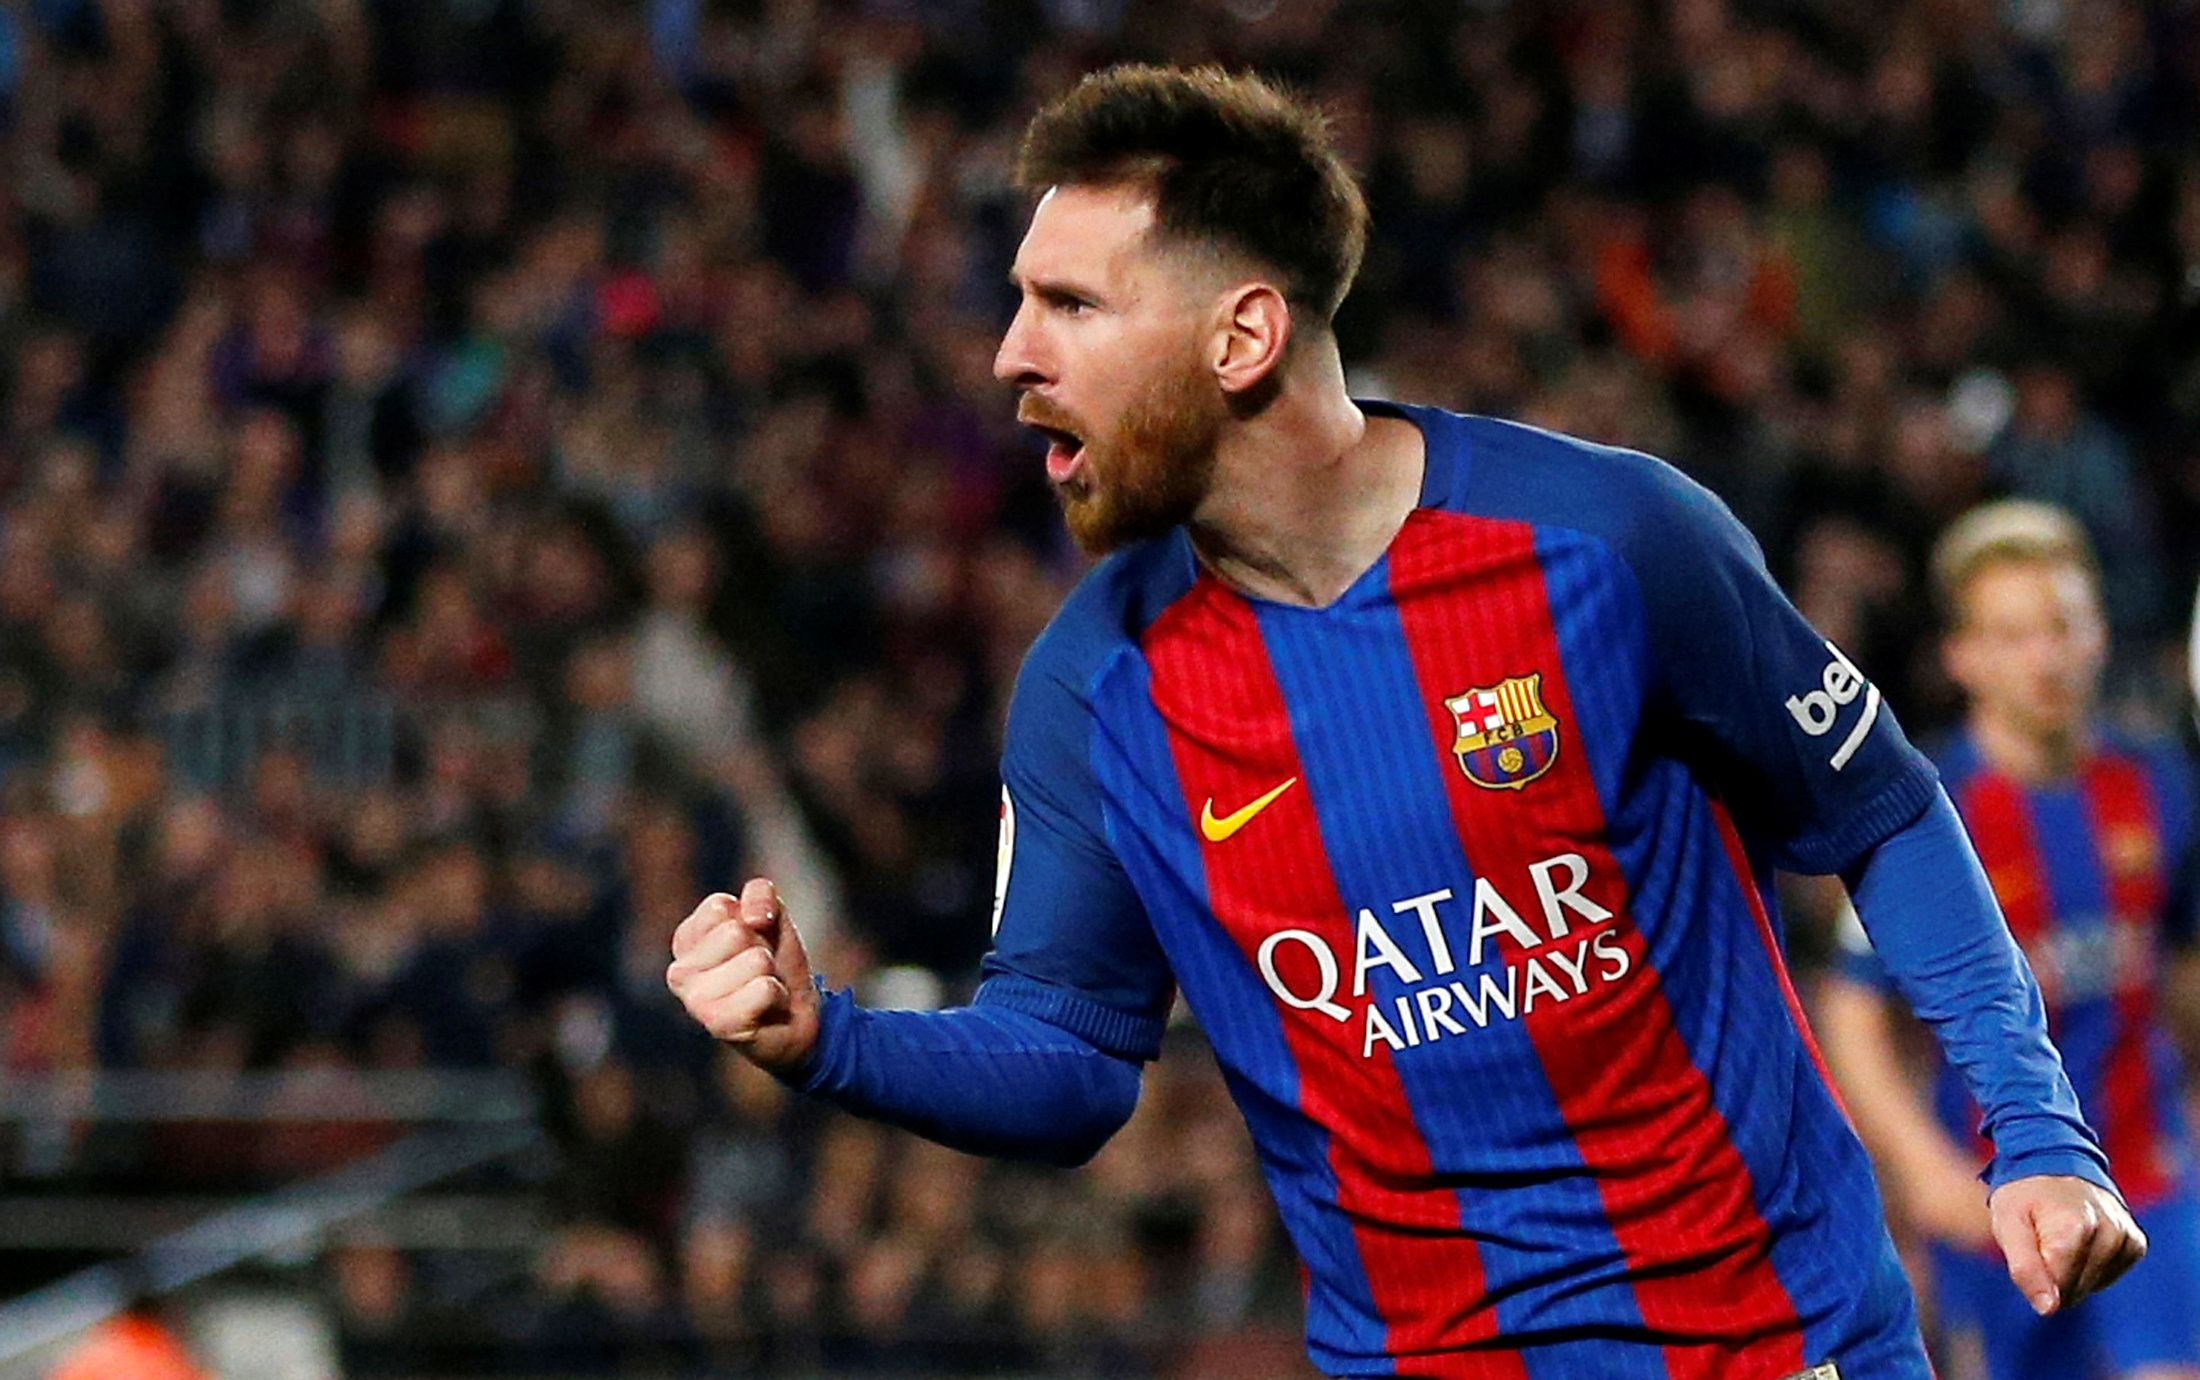 Isis Supporters Using Lionel Messi Are Waging A Propaganda